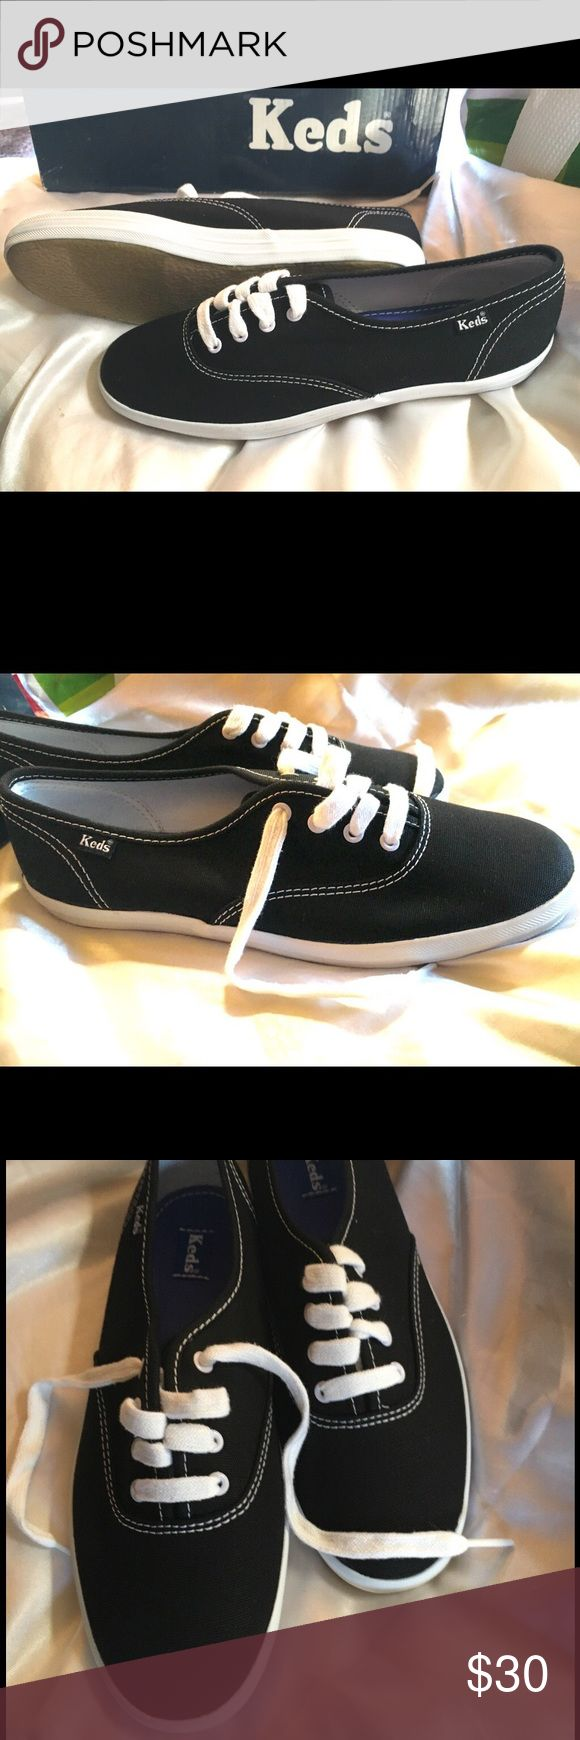 *NEW* Keds champion black lace up New in box. Kids size 4.5 which also = Womens size 6.5 Black canvas Keds Shoes